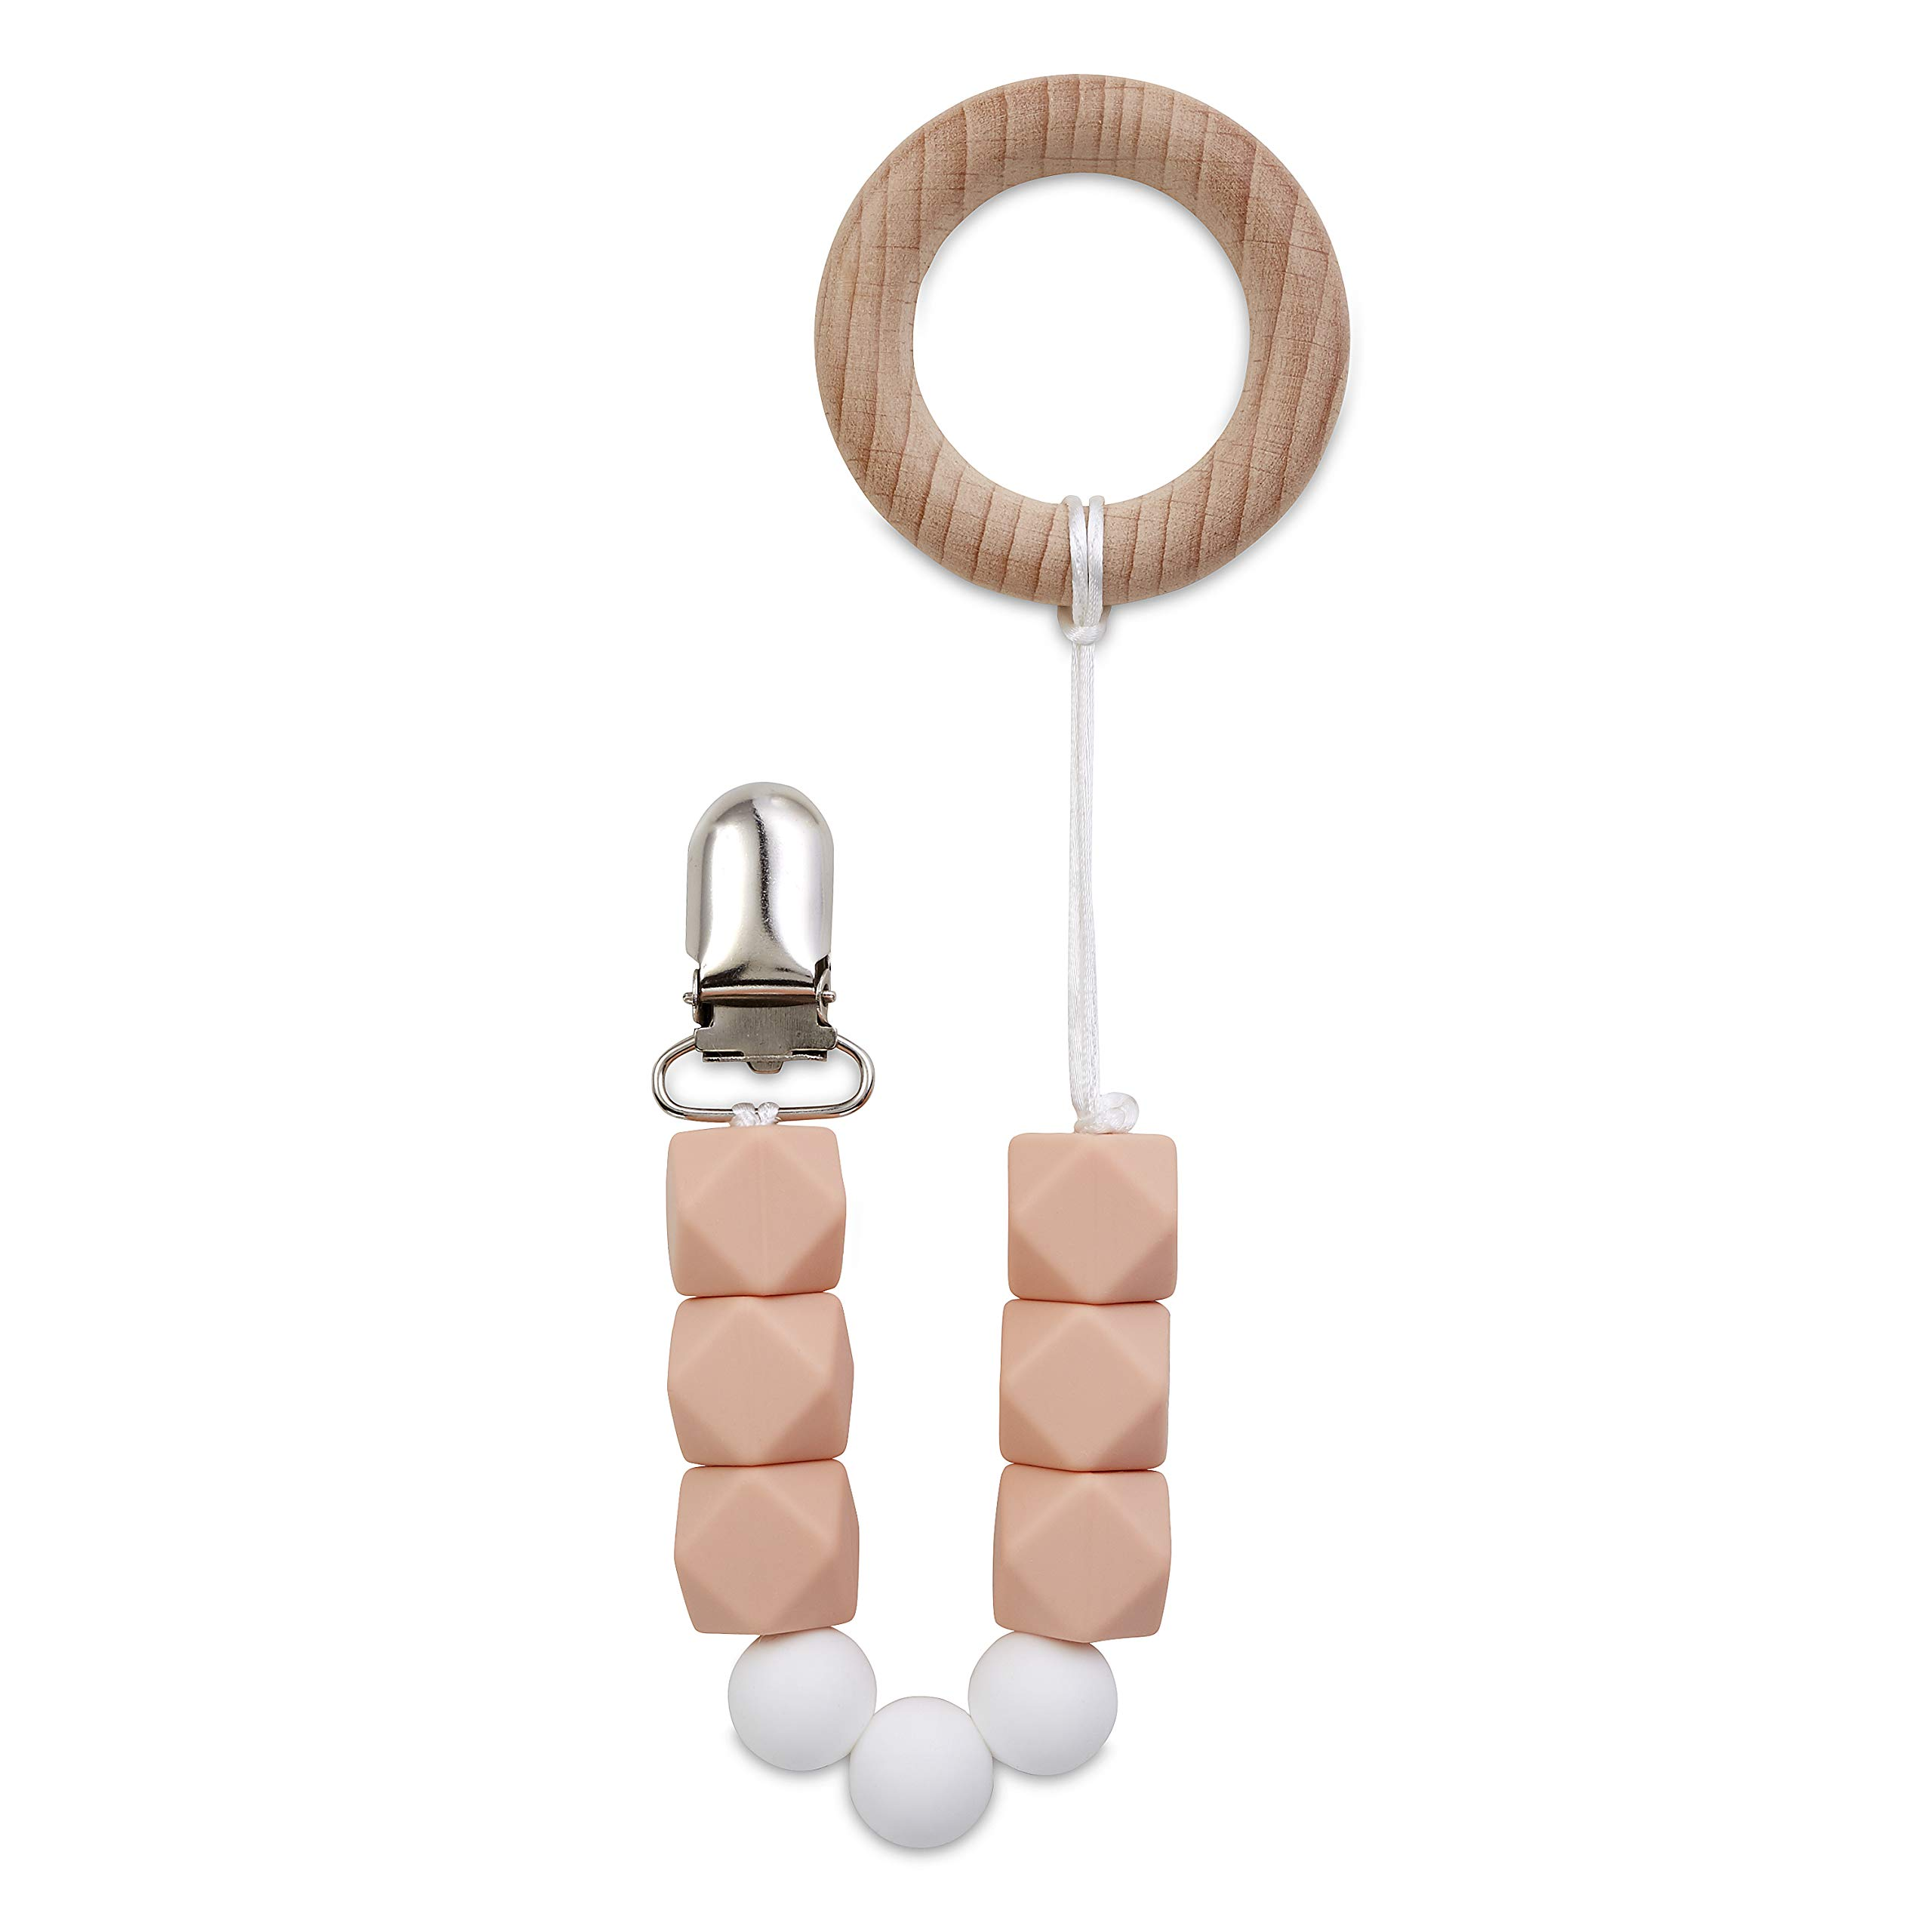 Pacifier Clip by Babe Basics: Handmade Natural Wood & BPA Free Silicone Dummy Chain Teething Toy (Peach) by Babe Basics